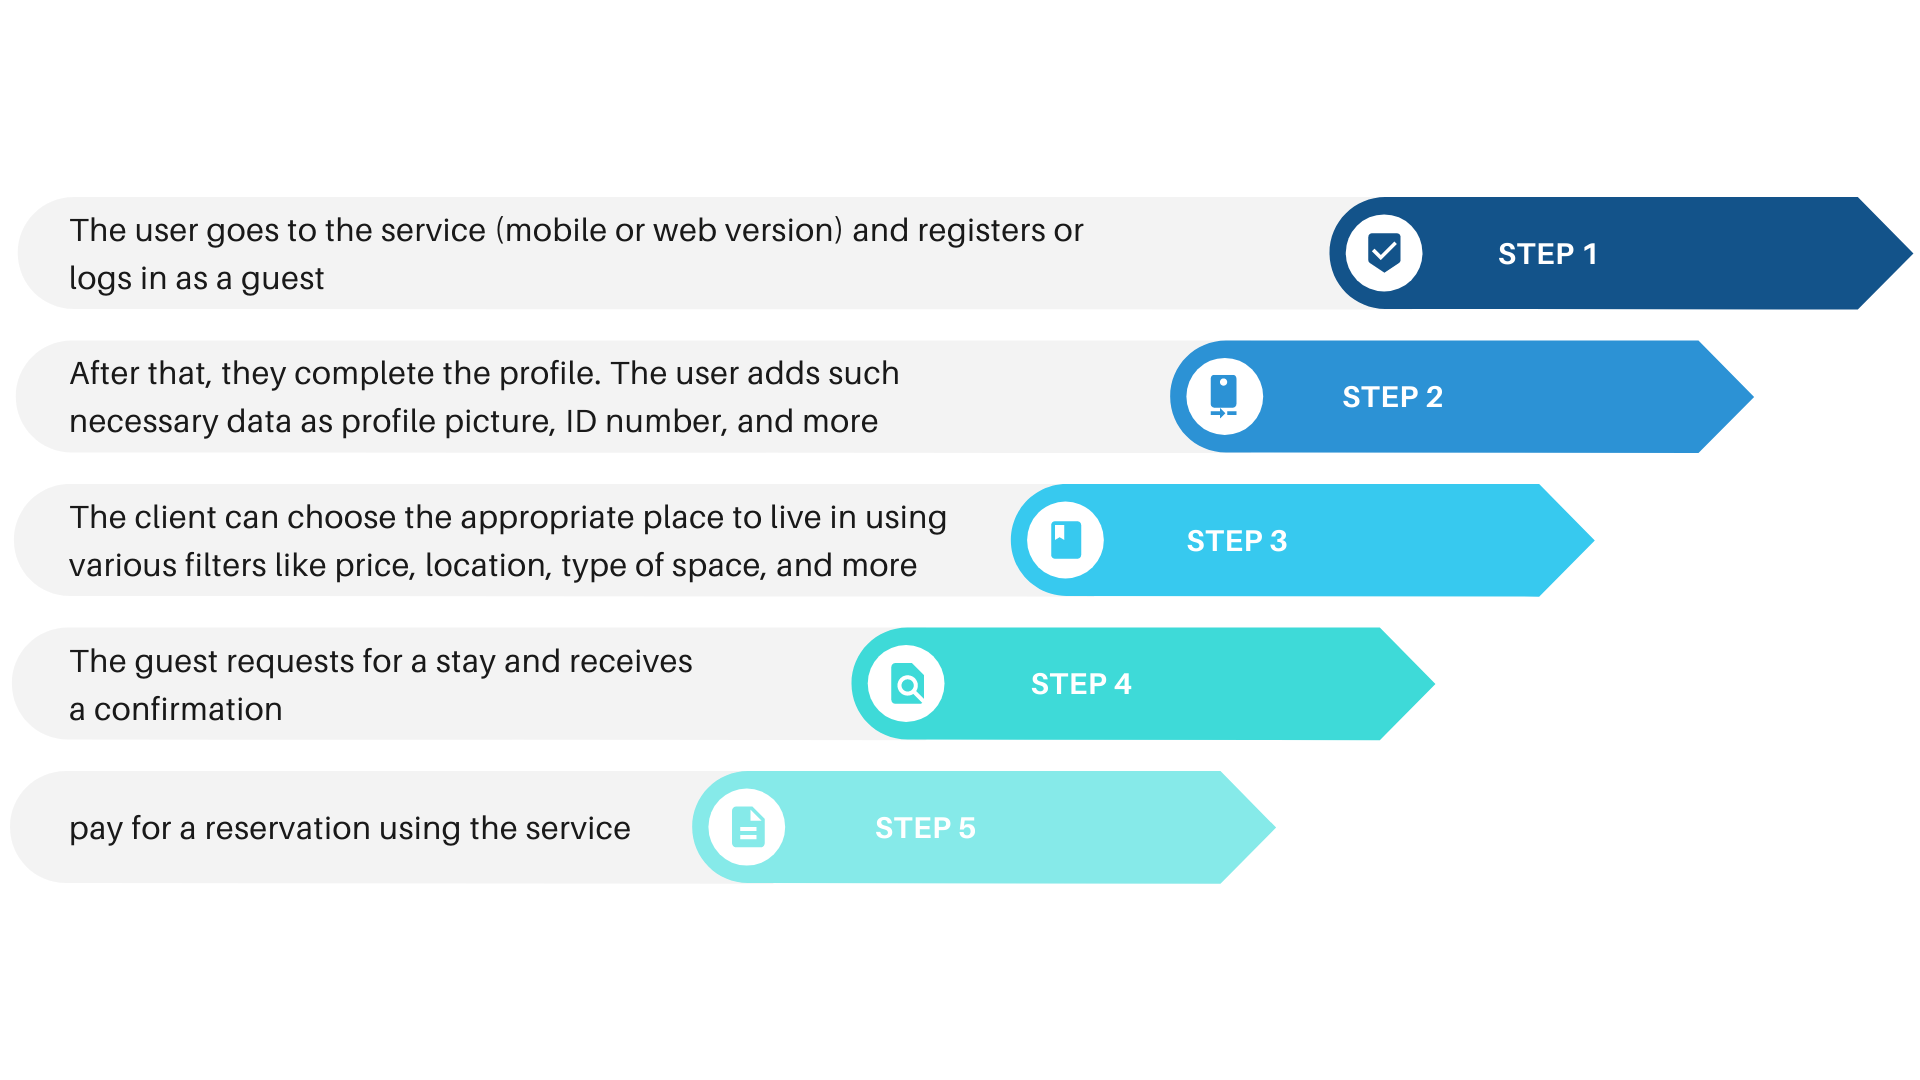 Airbnb Process Model for Guests